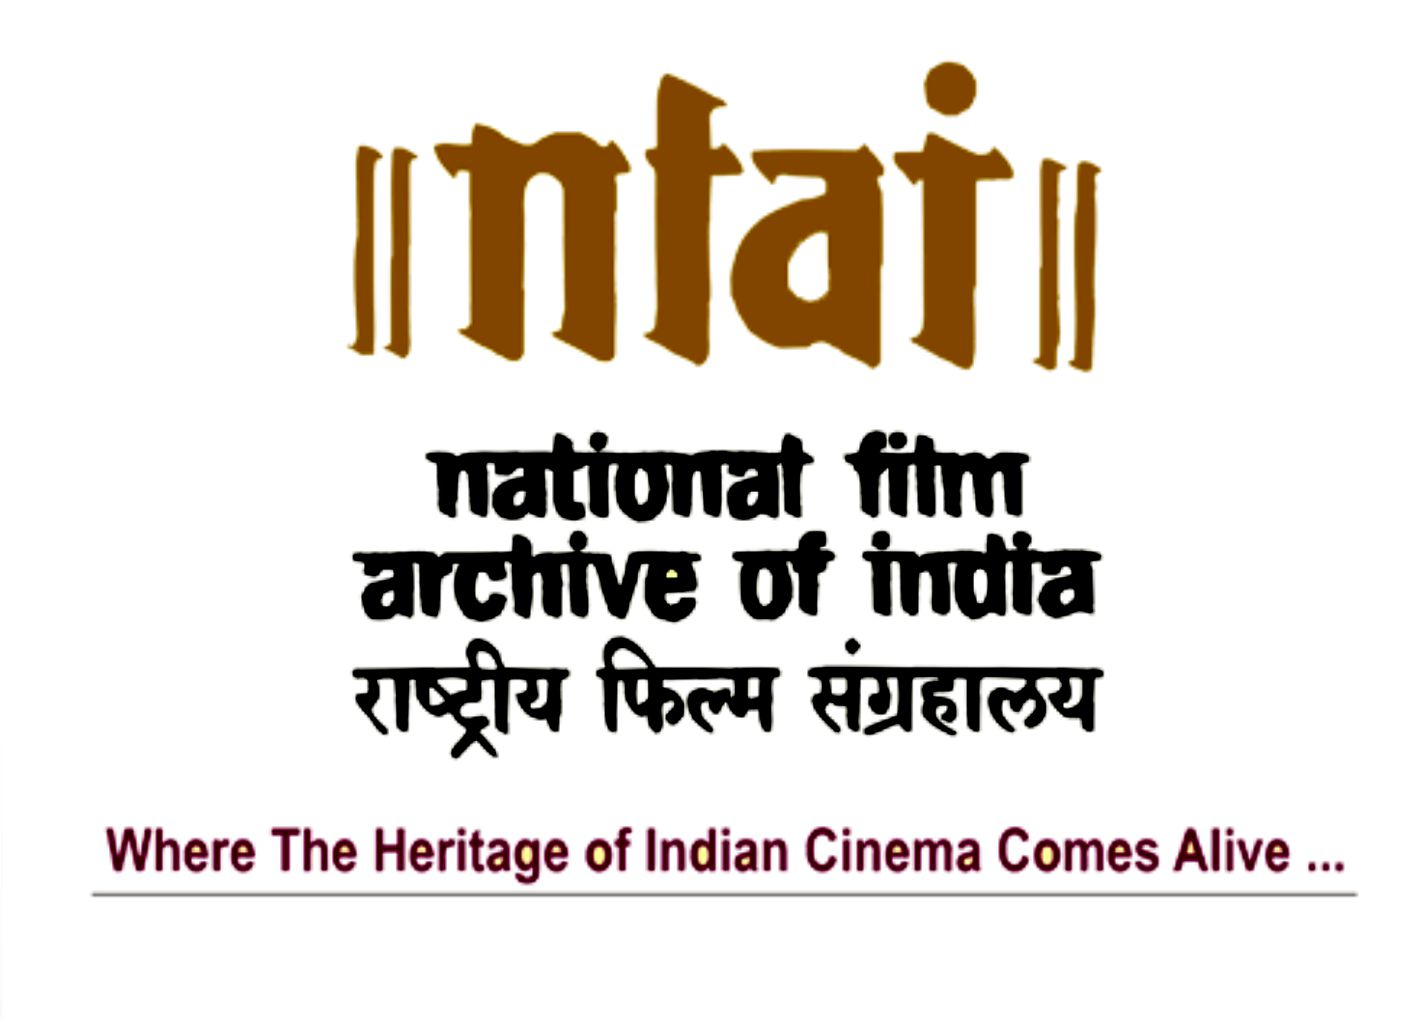 National Film Archives Of India